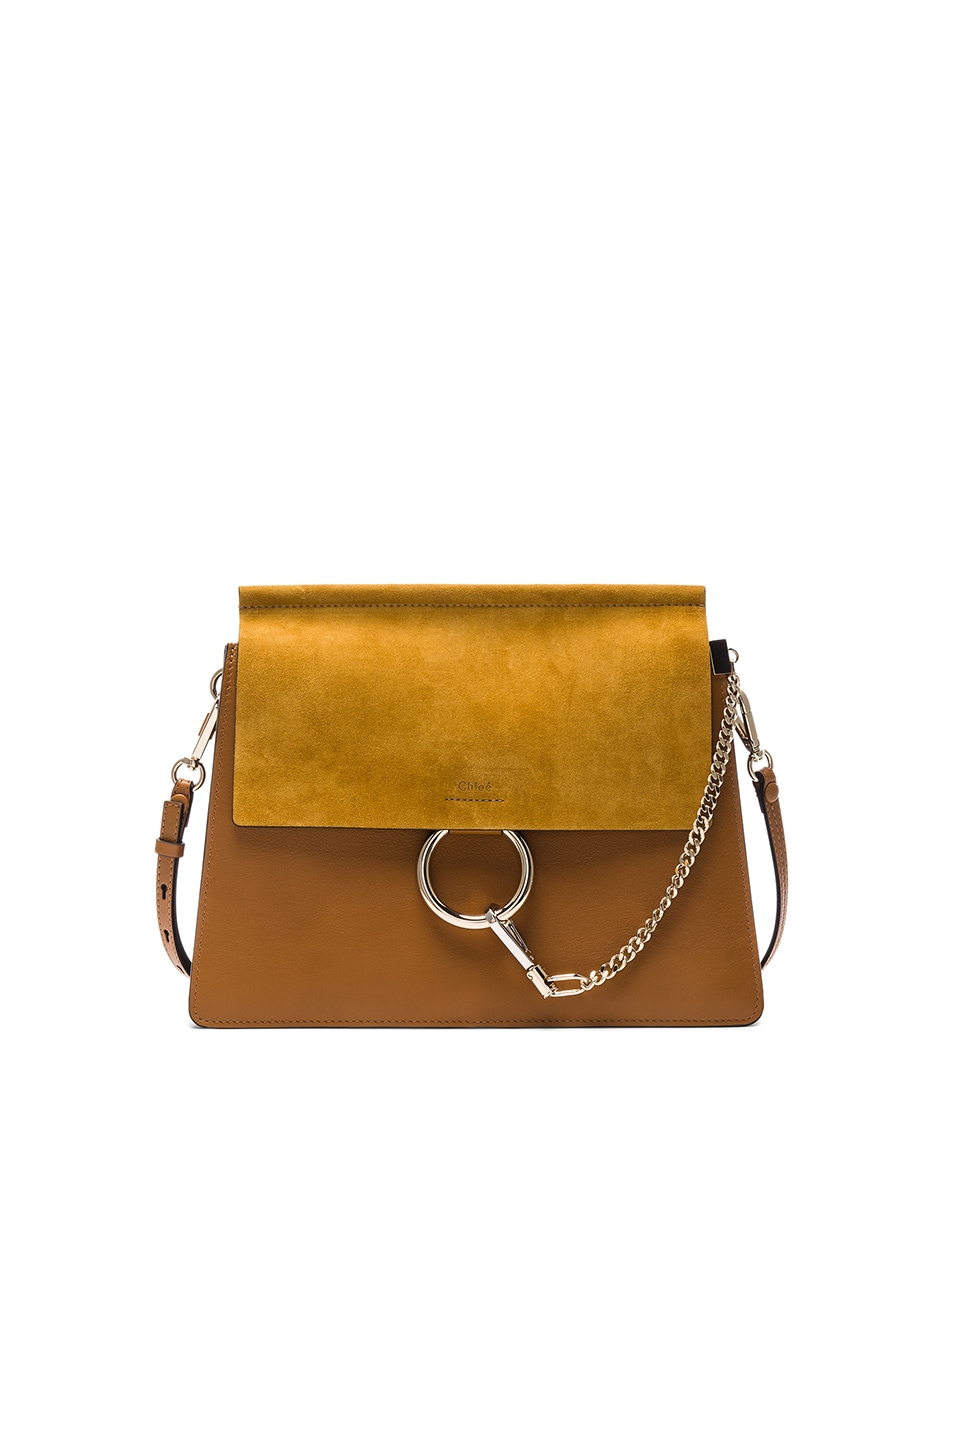 Image 1 of Chloe Medium Leather Faye Bag in Mustard Brown 0a4971d424c47